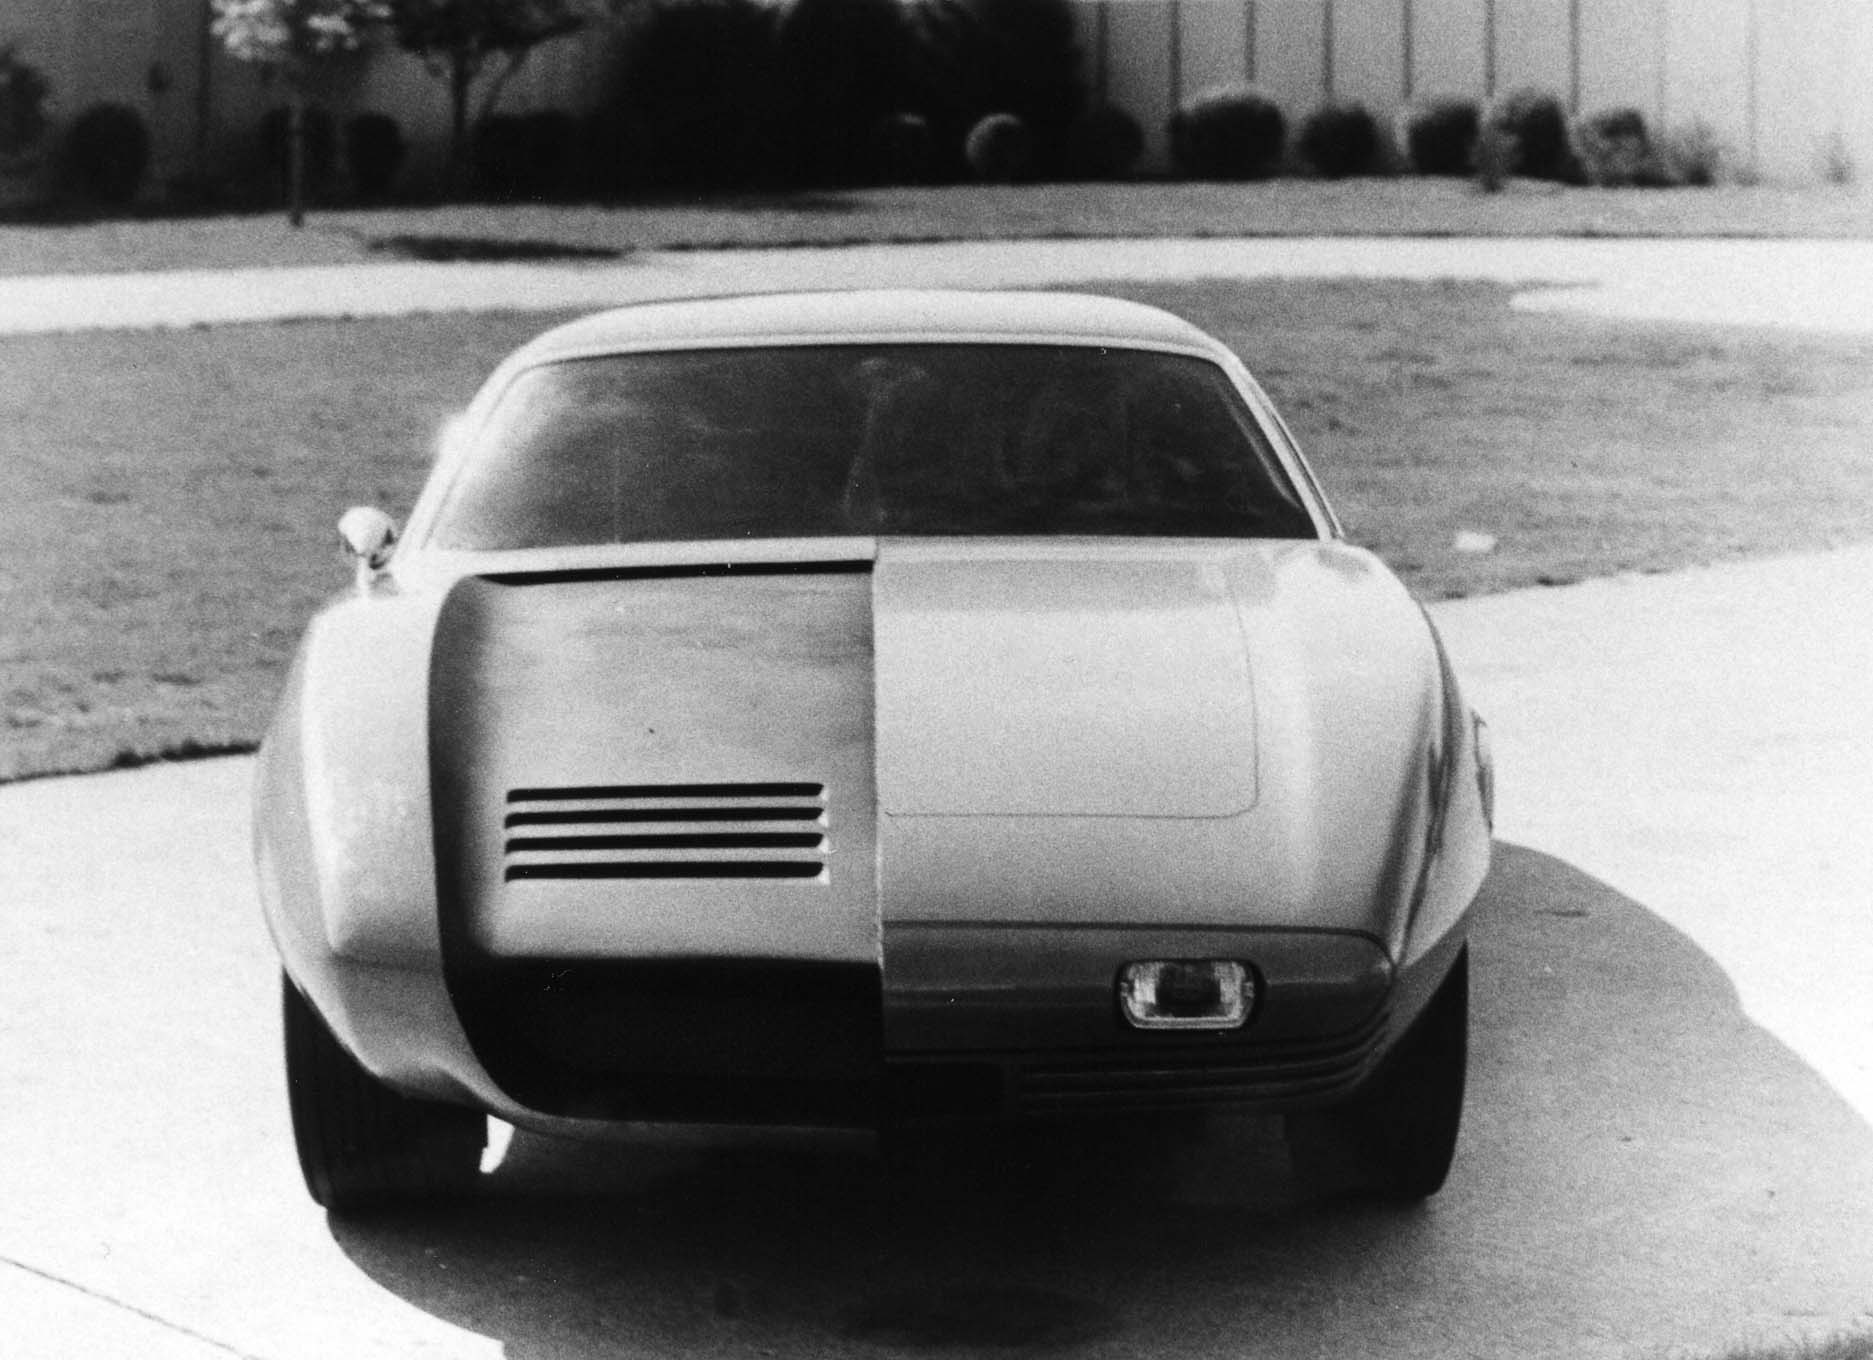 This is the front end of the same clay, now outside in the styling studio's courtyard on May 2. Two different hood and grille proposals were shown. The large opening at the valance on the right side included a concave hood. The left hand side has a more traditional hood line, tipped with a bumper that has a recessed fog lamp. This angle illustrates how the driver's side fender also bulges out farther over the wheel opening.